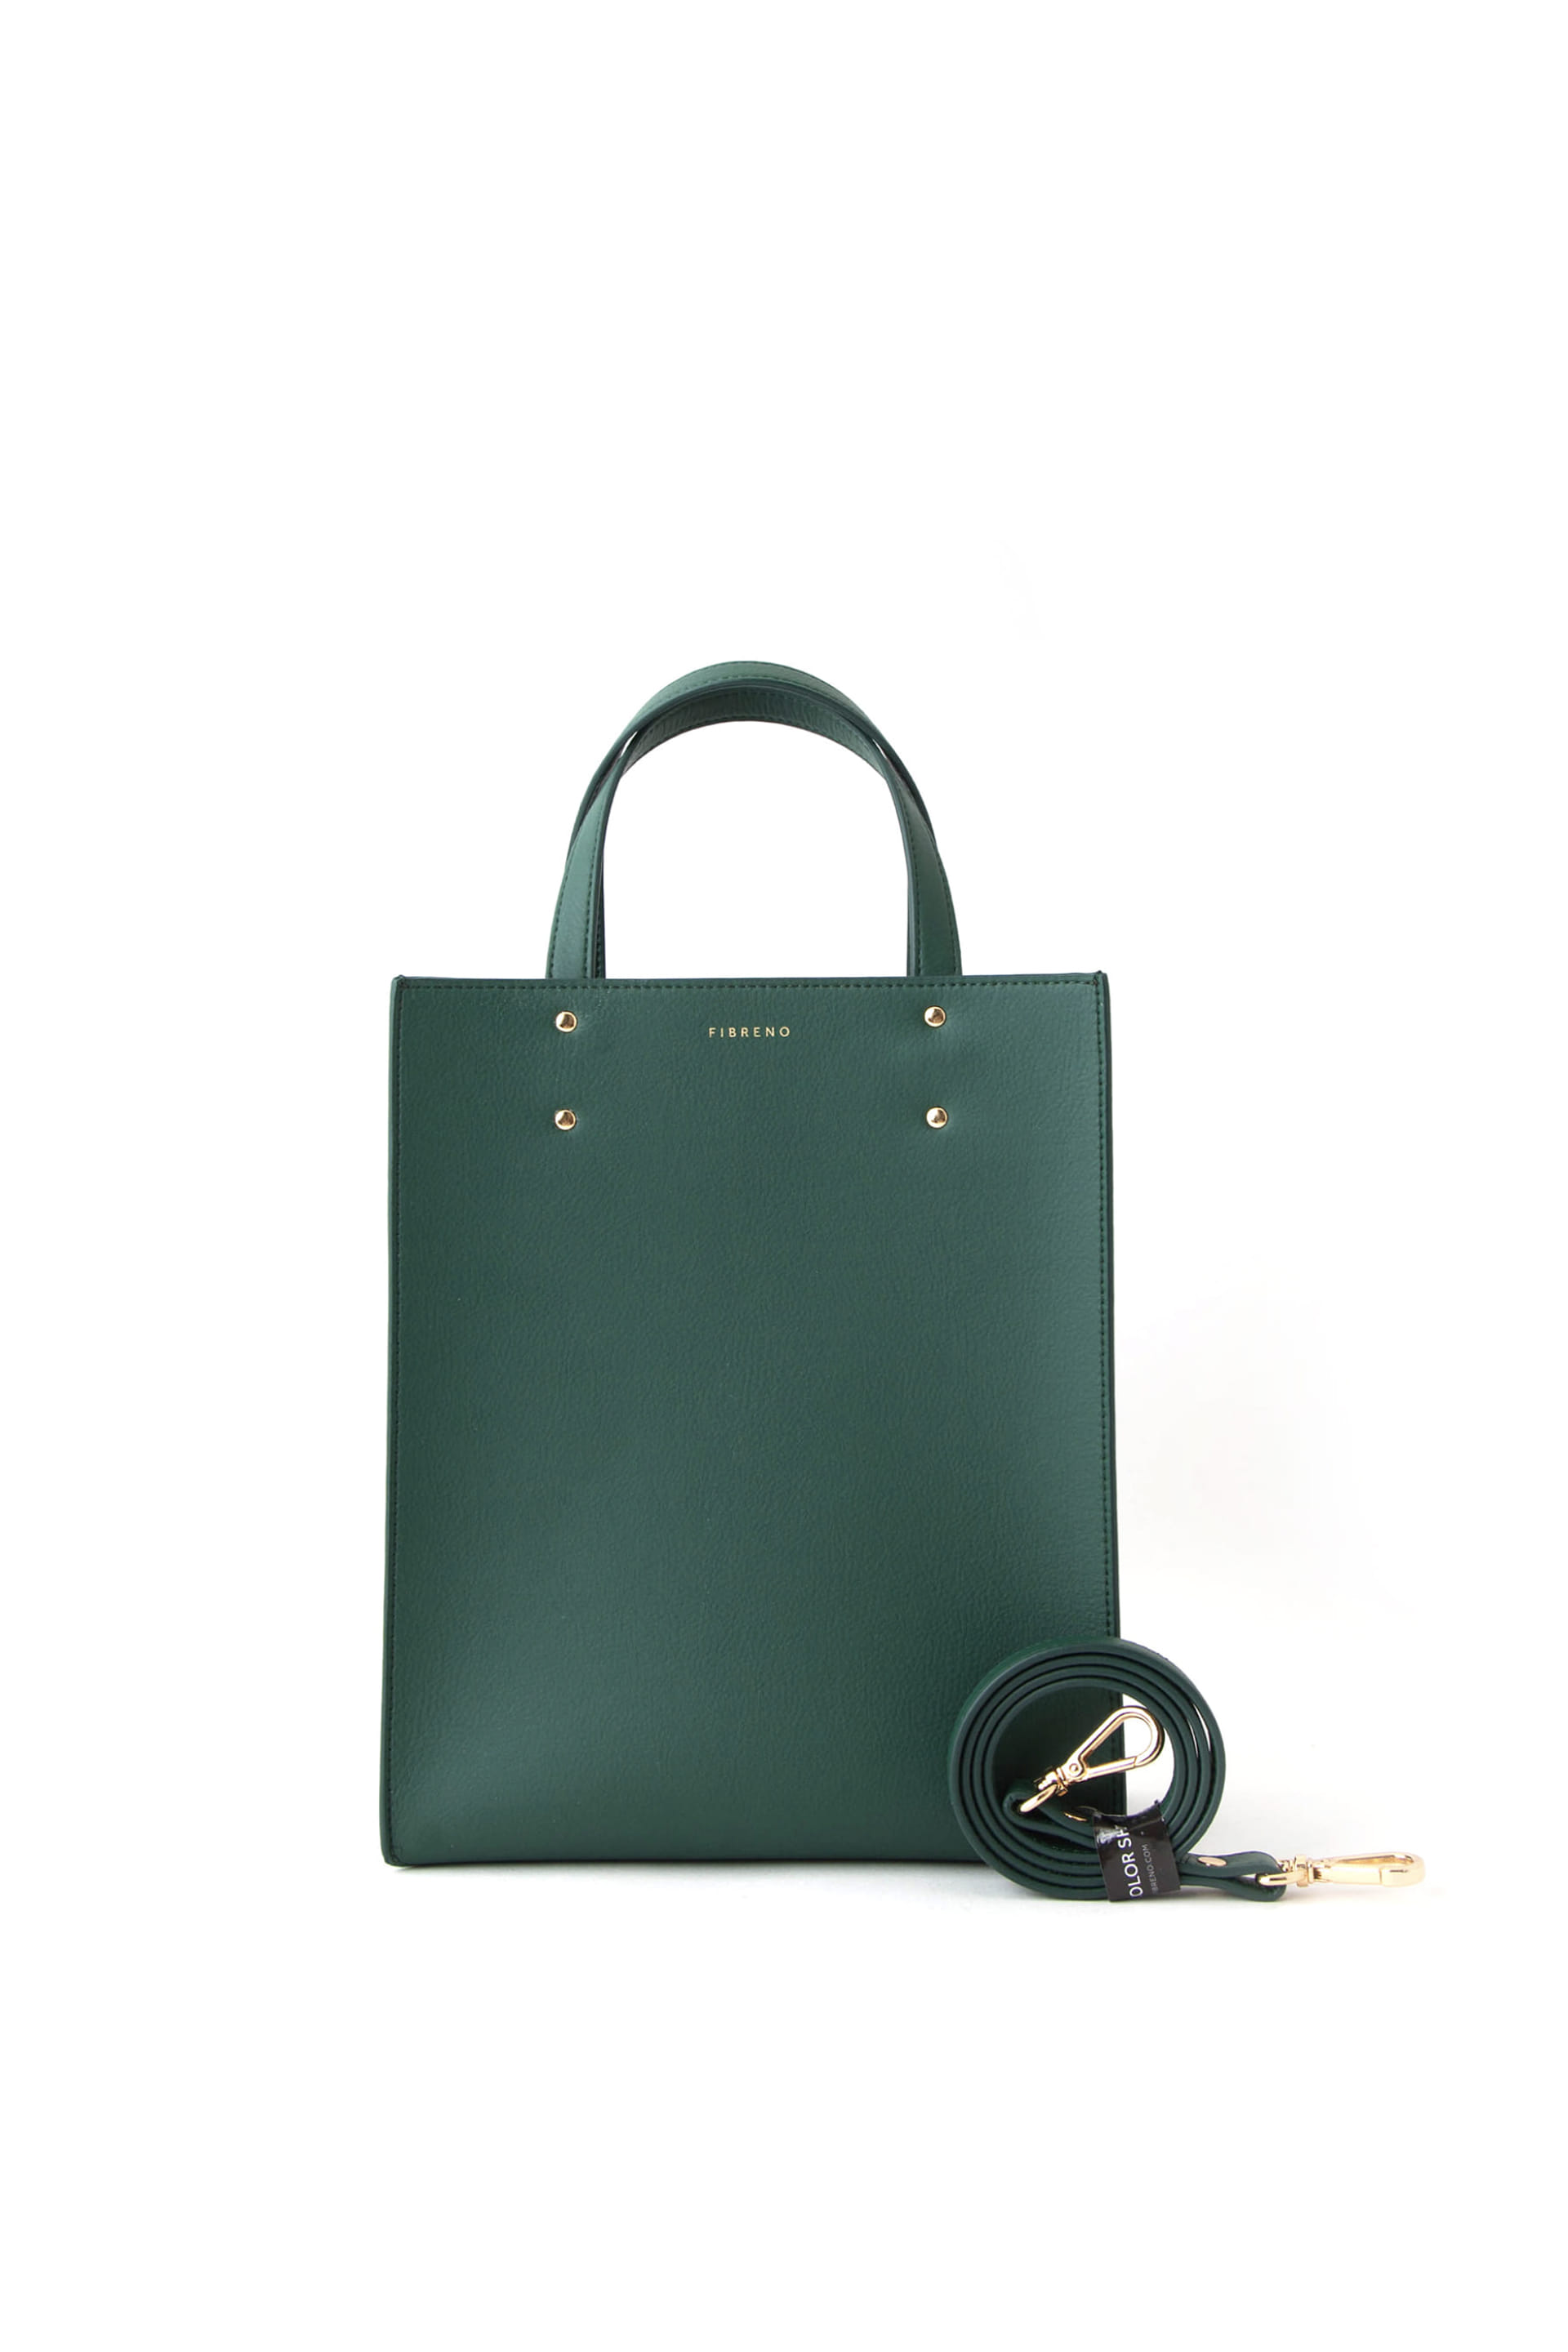 ORIGINAL MINI BAG 12 Deep Green